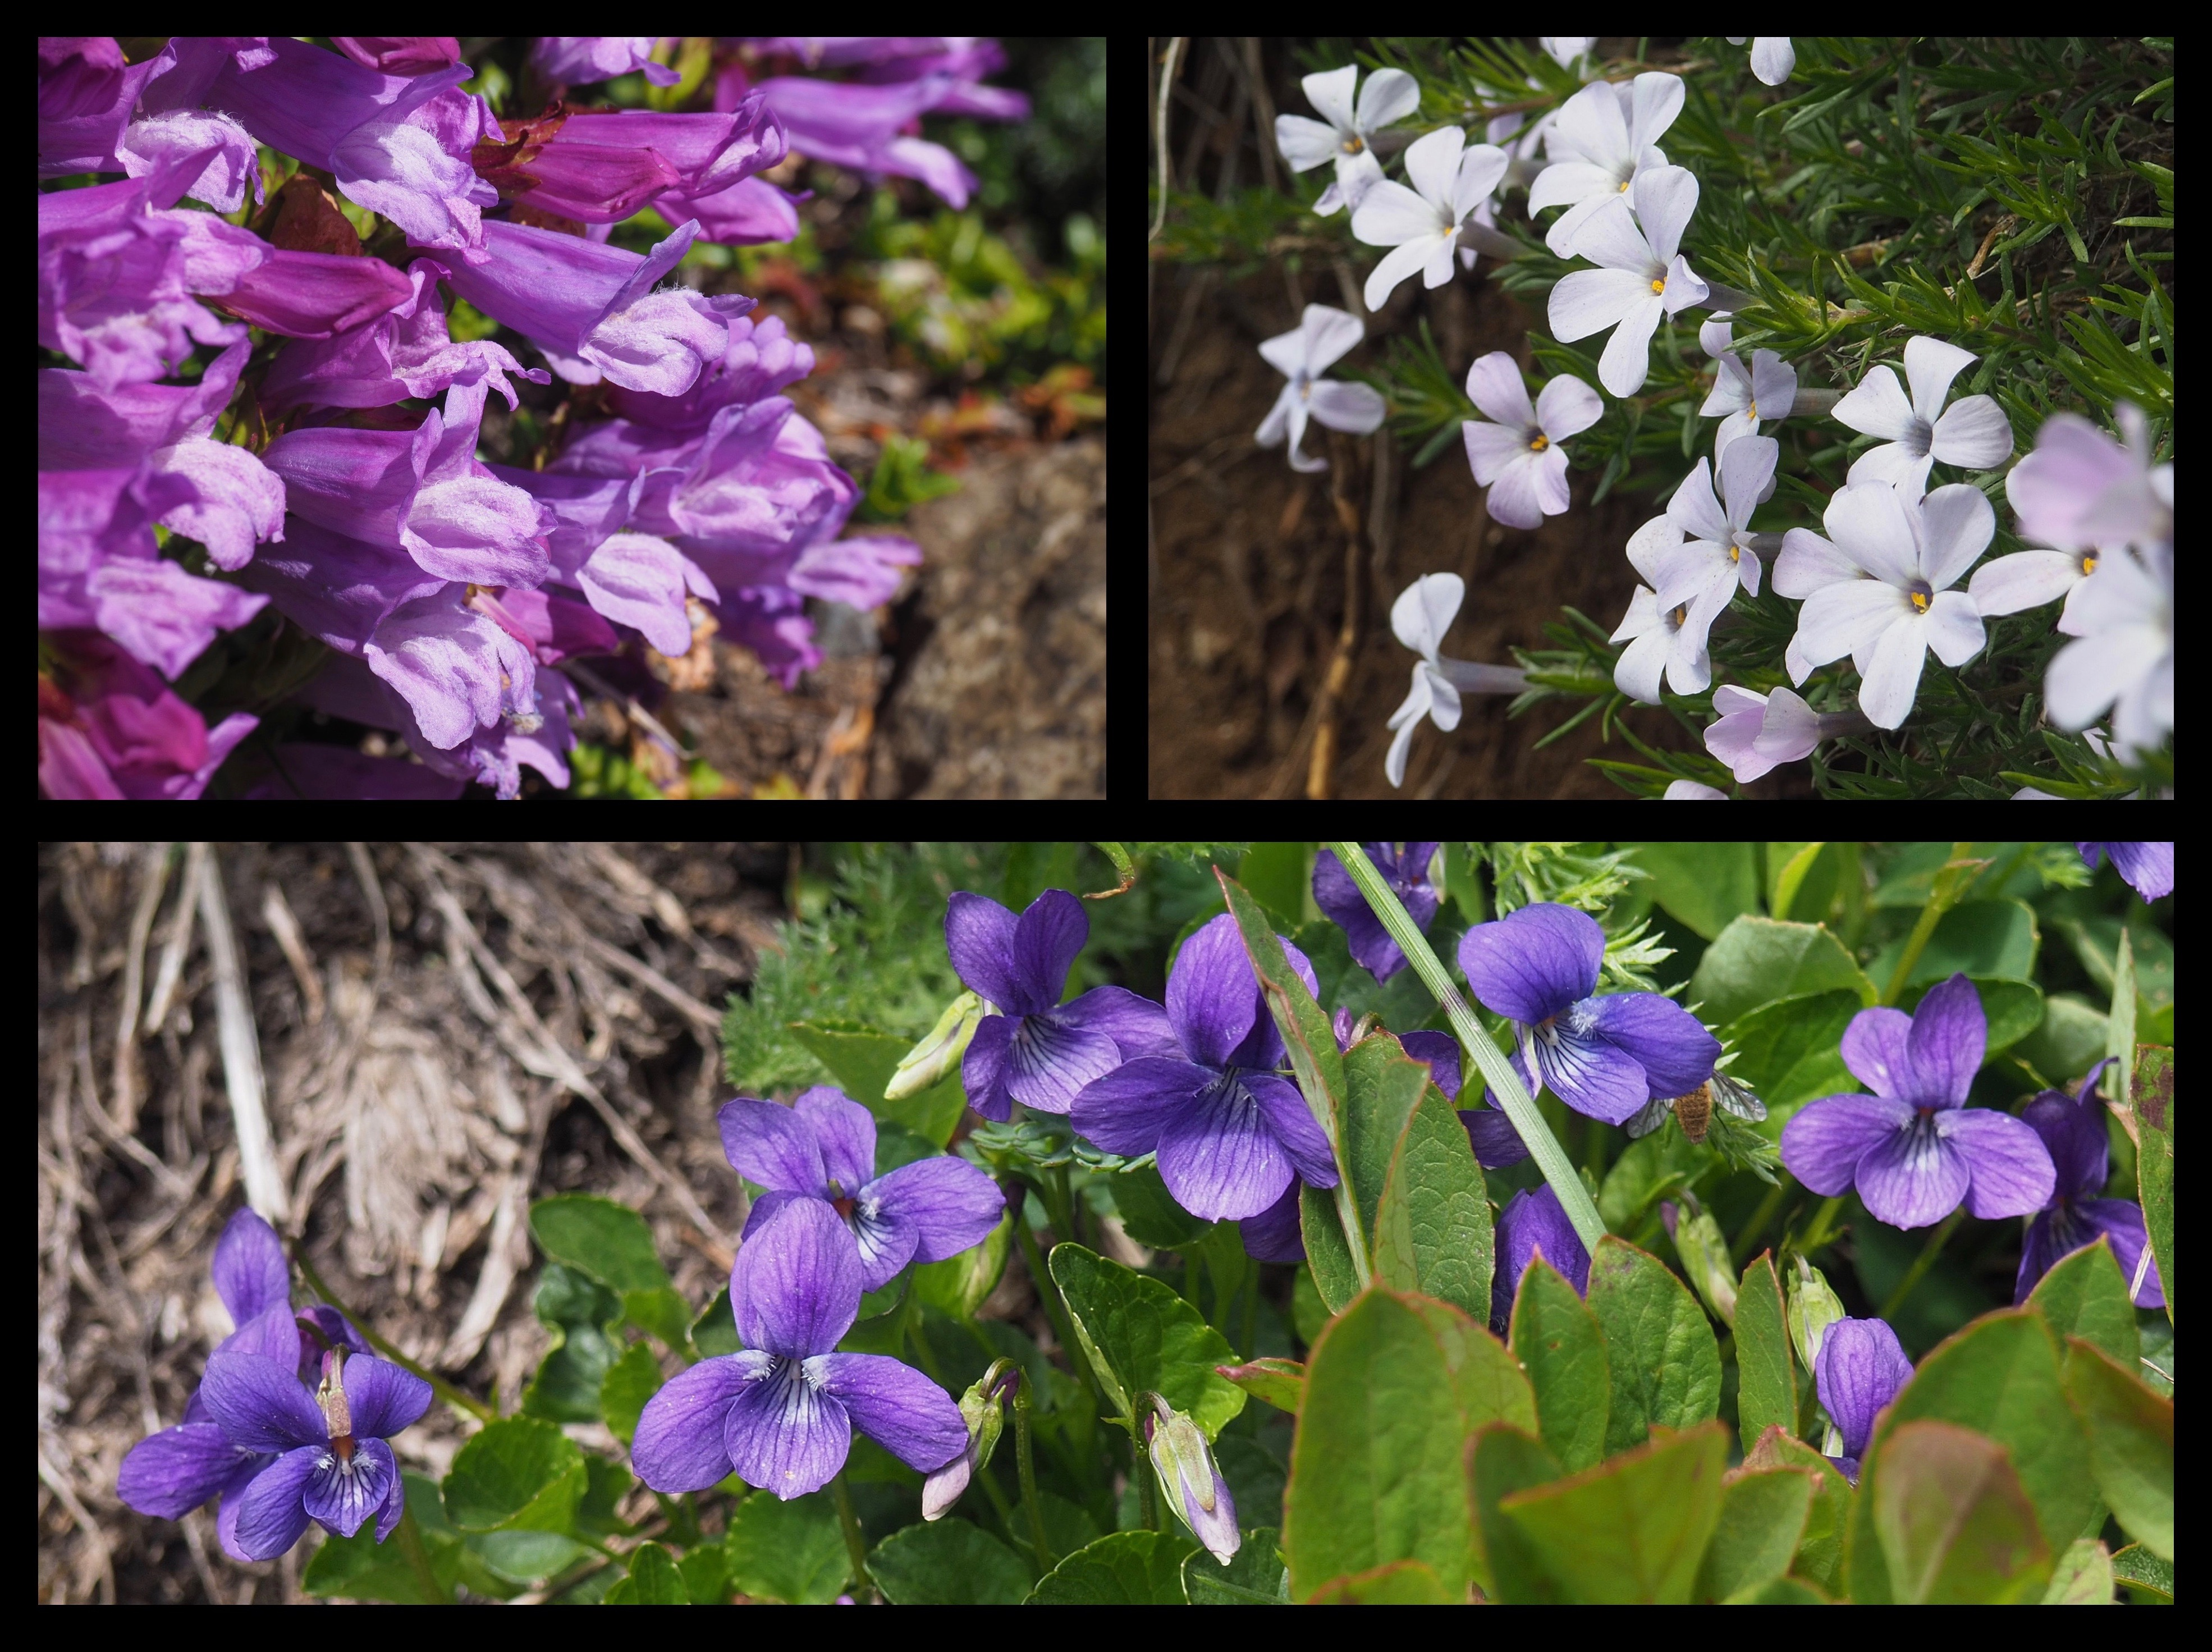 Groundcover blooms soften the mountaintop stone, including Davidson's beardtongues (Penstemon davidsonii) (top left), spreading phlox (Phlox diffusa) (top right), and hookedspur violets (Viola adunca) (bottom). Mount Defiance Trail, July 02, 2016.